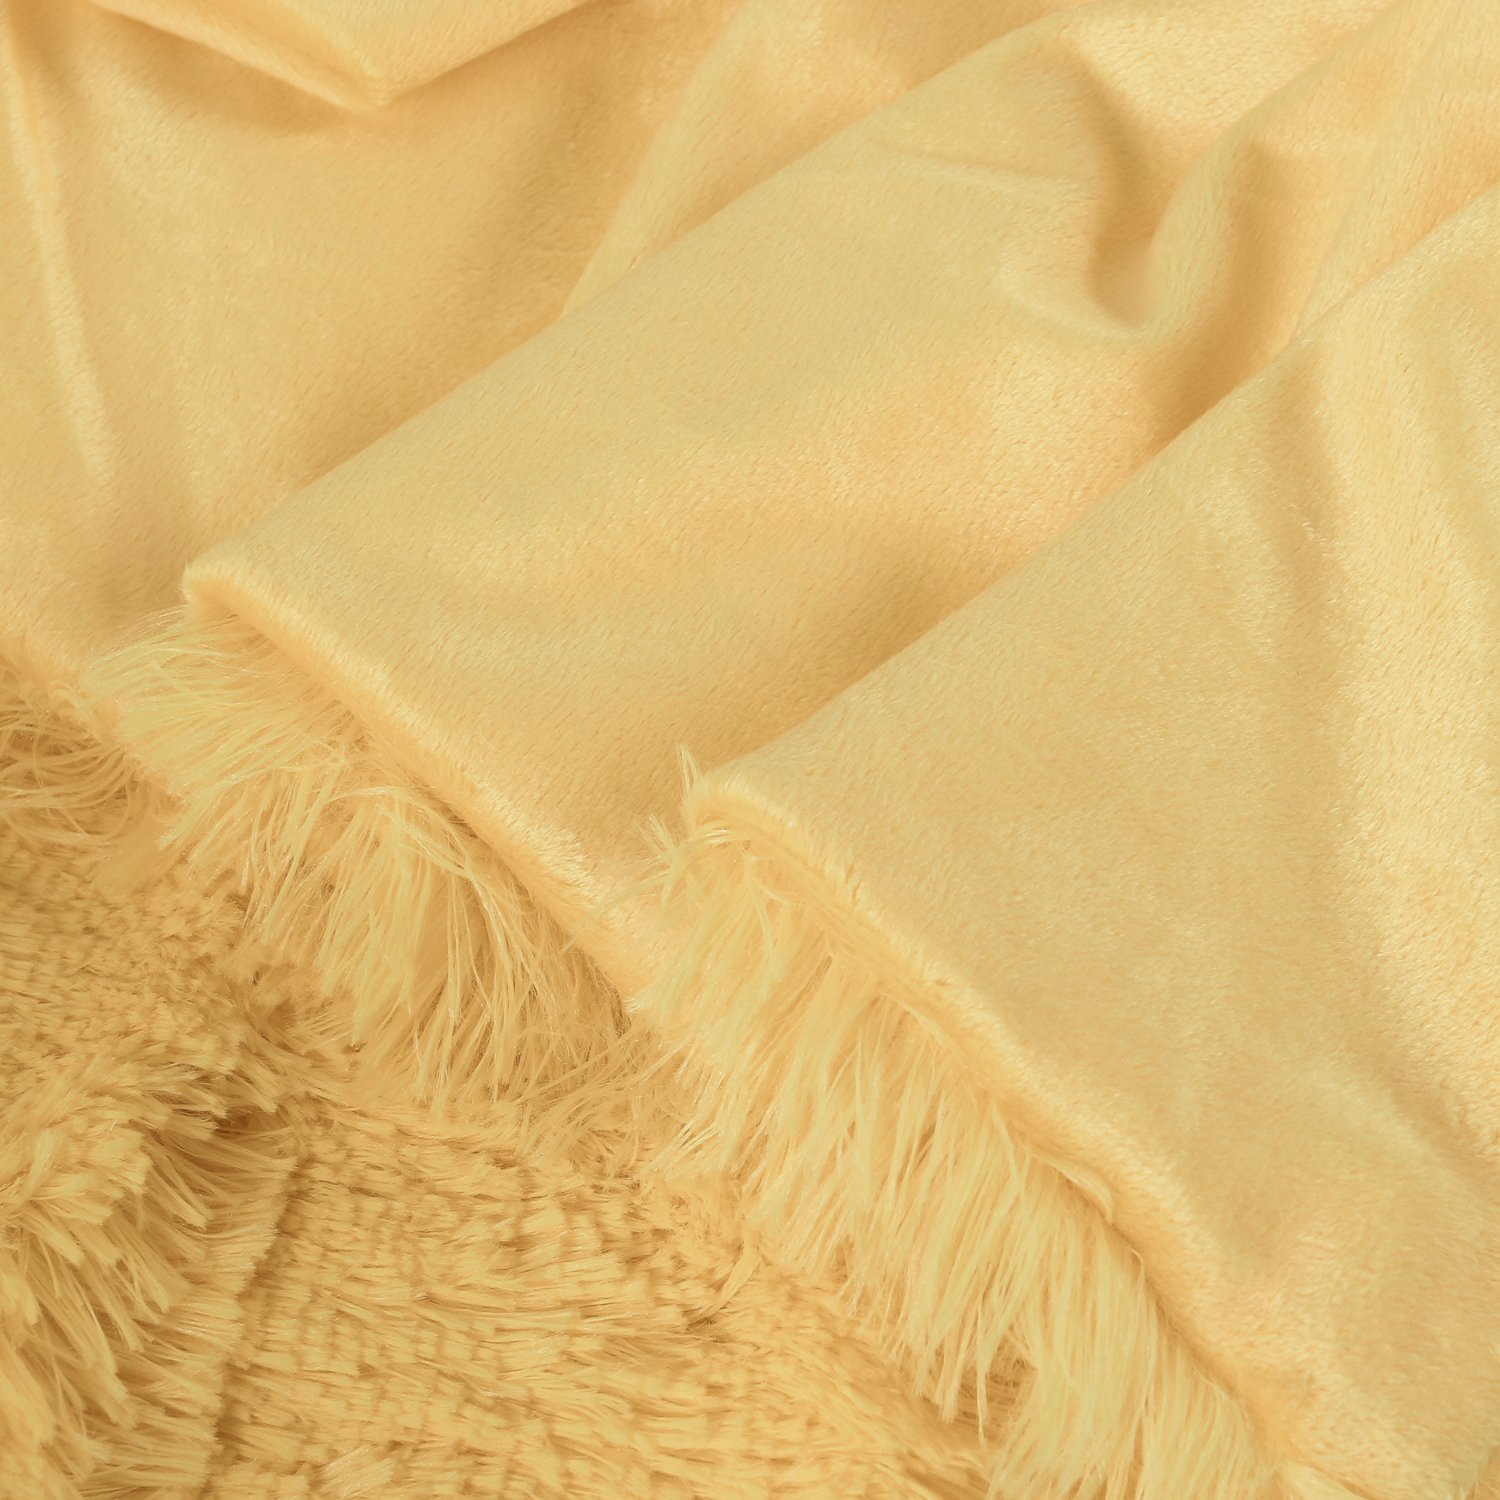 DSM060P Ltd CaliTime Super Soft Blanket Throw for Couch Sofa Bed Elegant Cozy Plush Warm Faux Fur Solid Color 60 X 80 Inches Gold Qingdao PT Trading Co